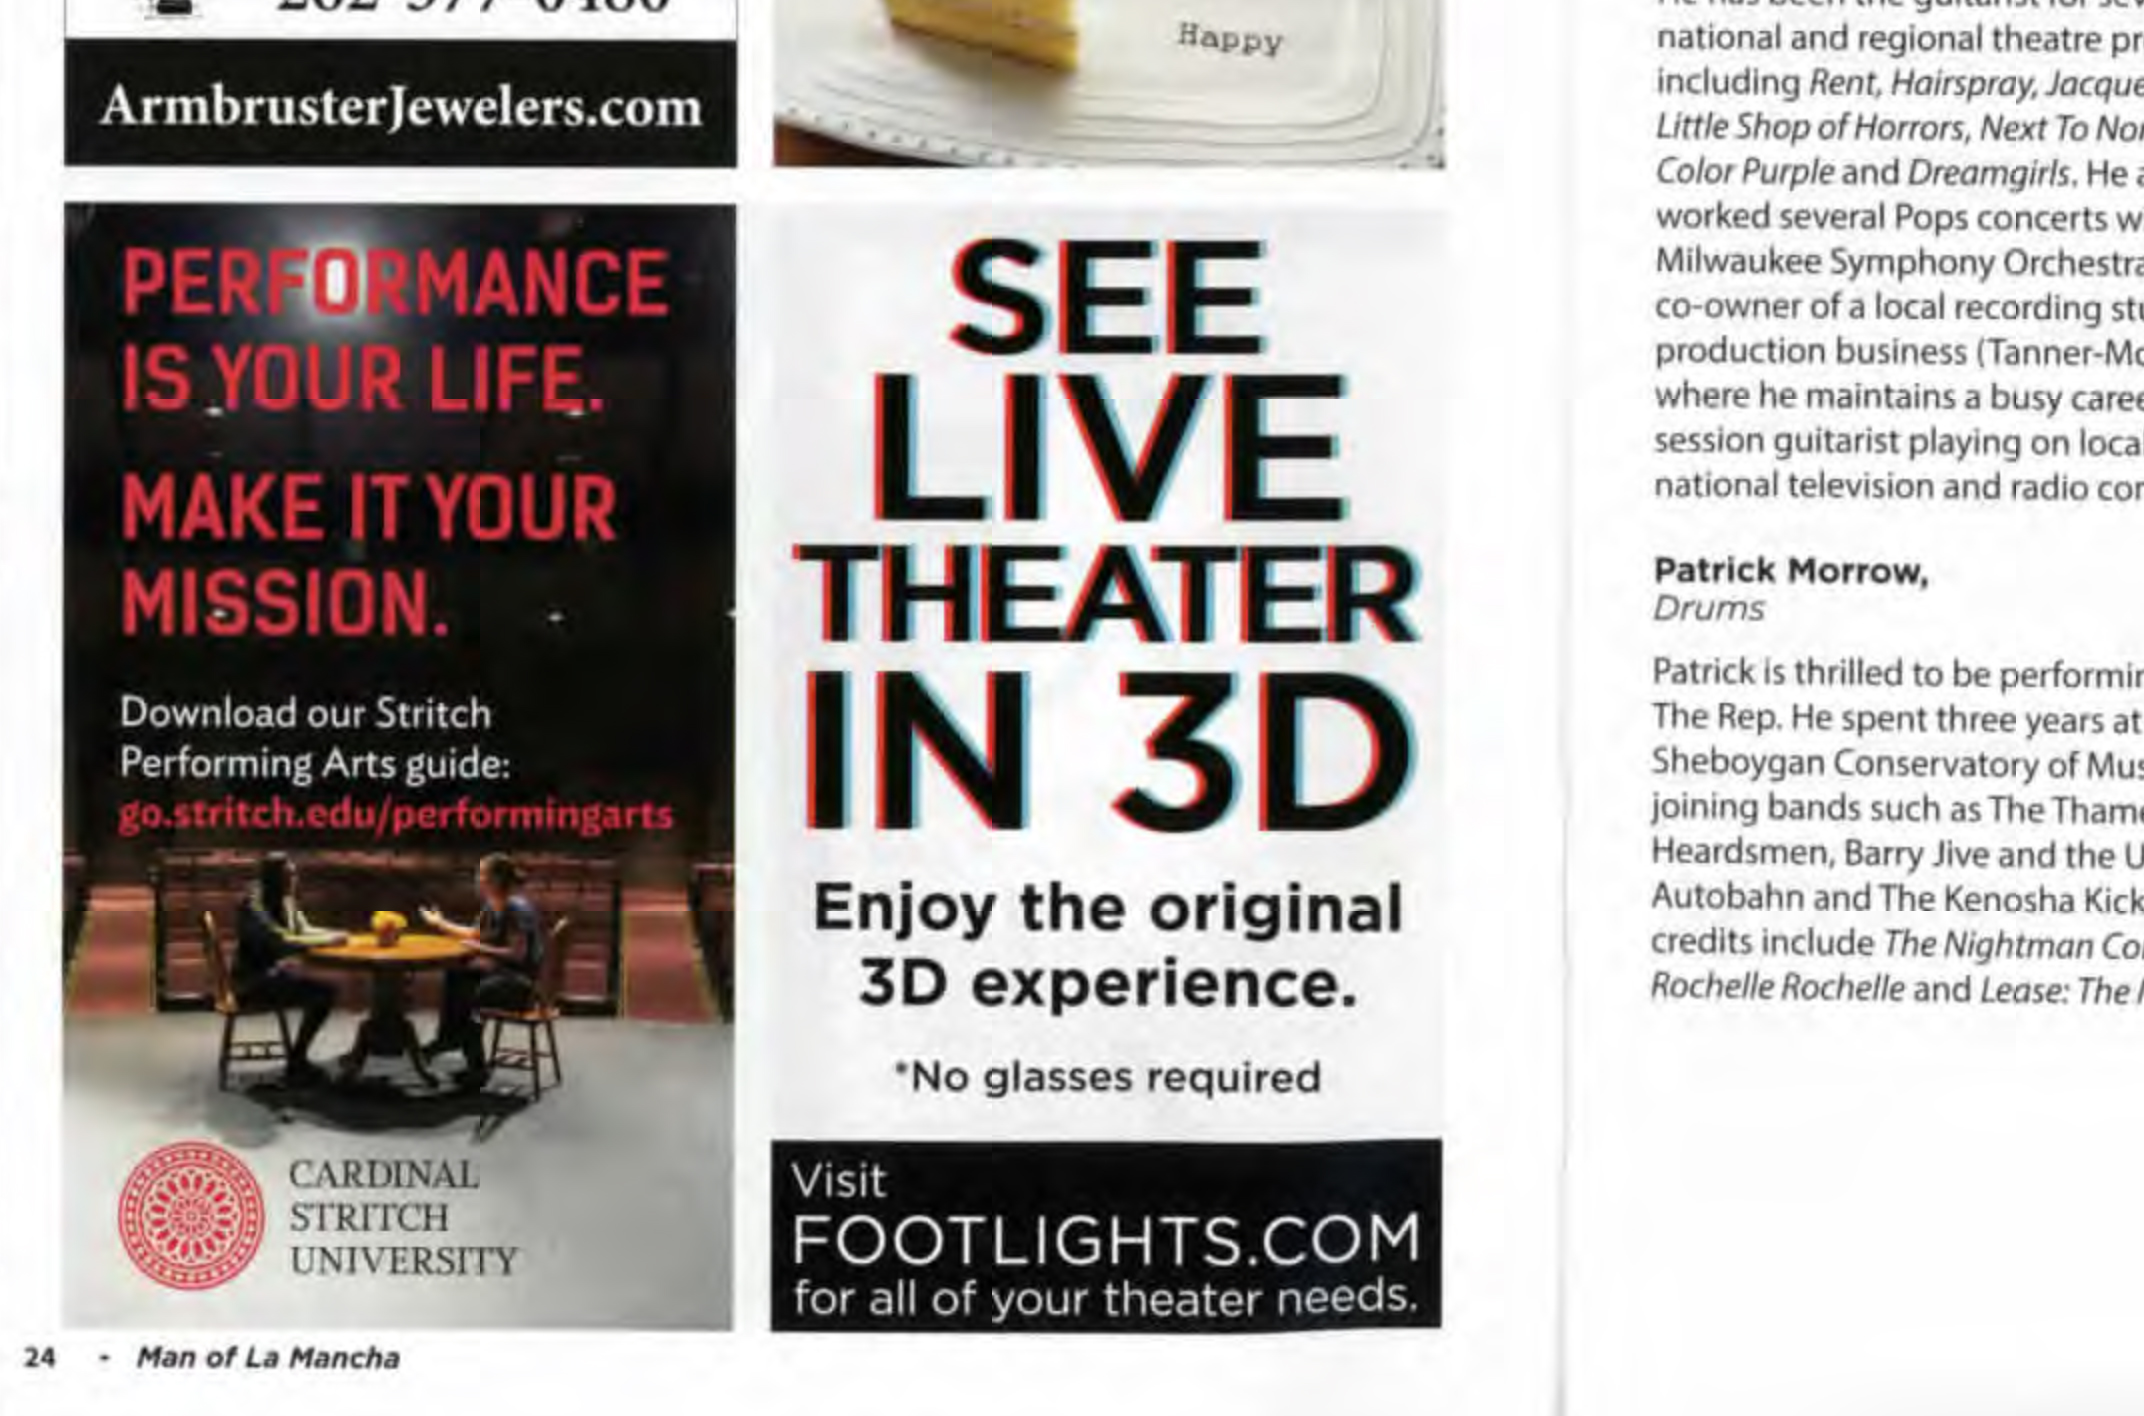 Print Ad - Theater Guide.jpg